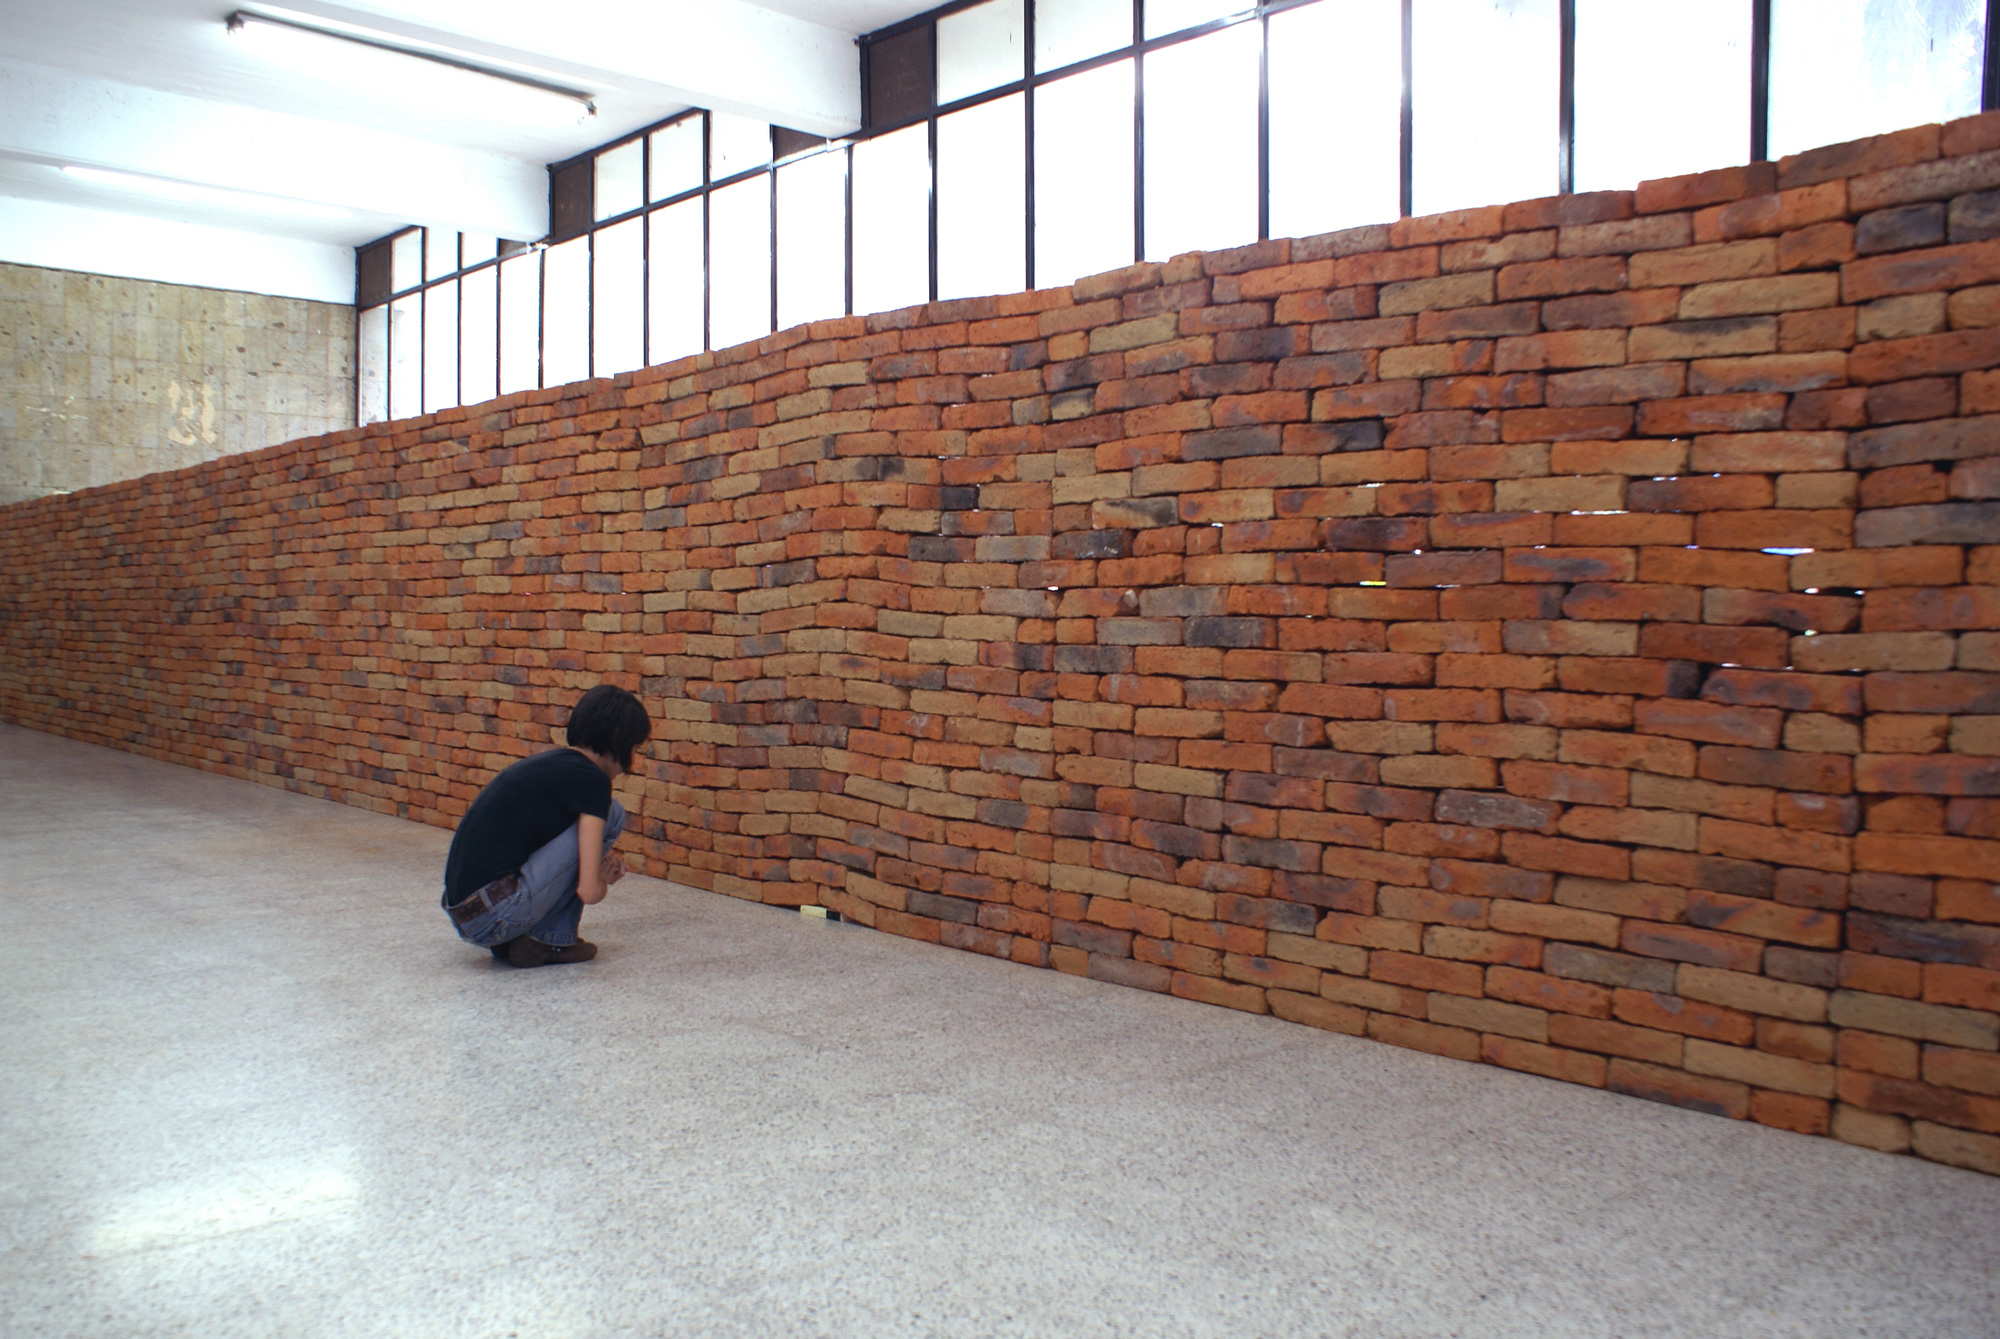 A Single Book Disrupts the Foundation of a Brick Wall by Jorge Mendez Blake (5 pics)